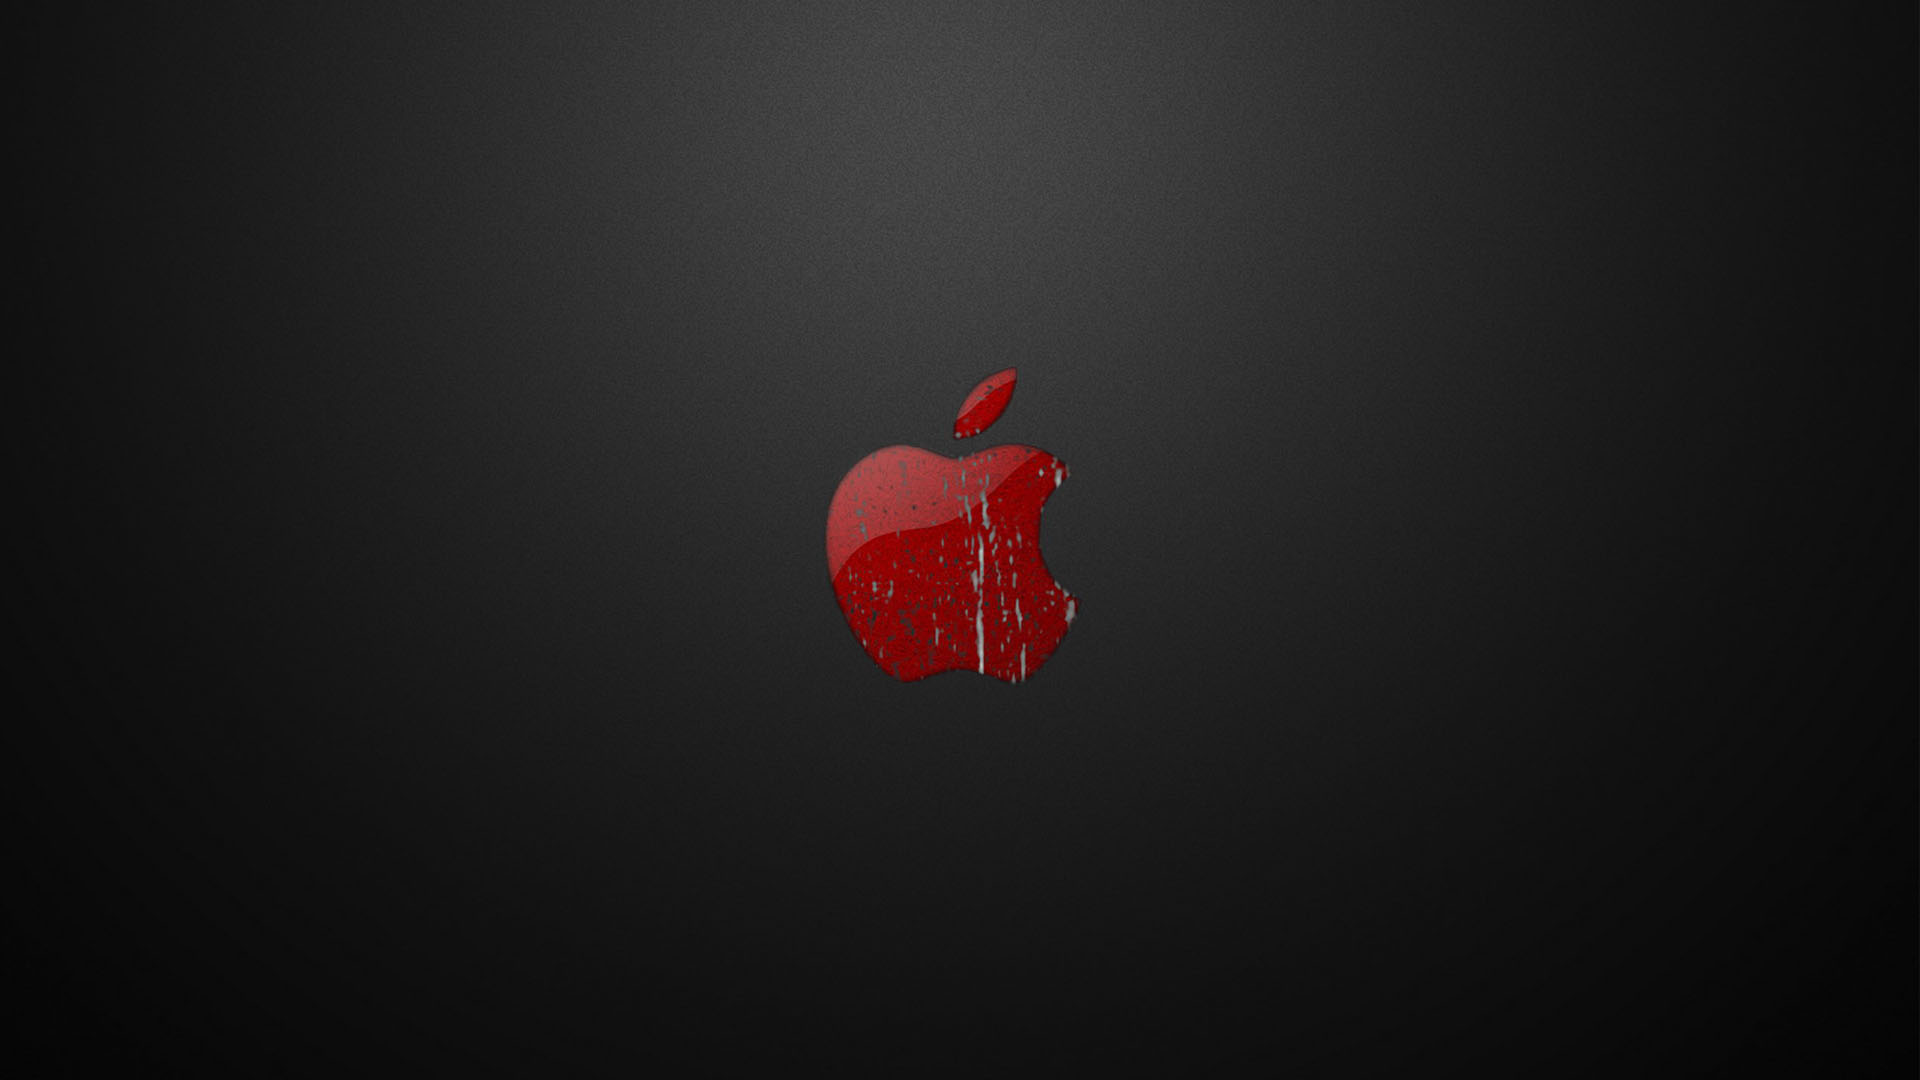 Cool Devil Wallpapers - Wallpaperall